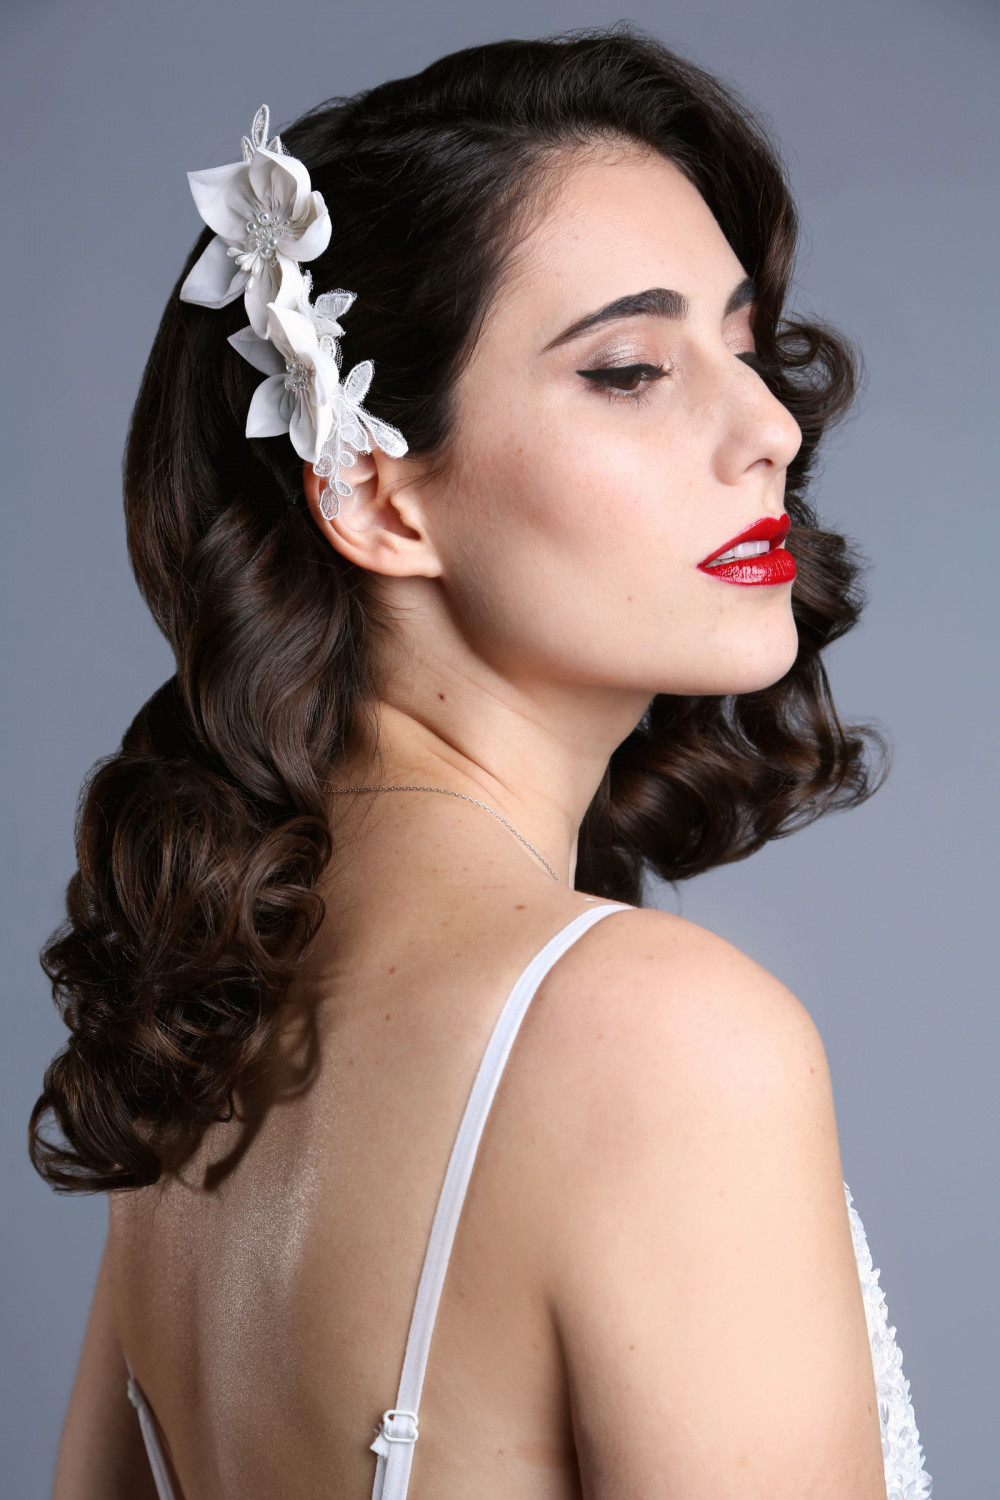 Styled Shoot - Bridal Collection - Make Me Bridal Artist: Olta Citozi Hair and Makeup . Photography by: Giorgia Albanesi .